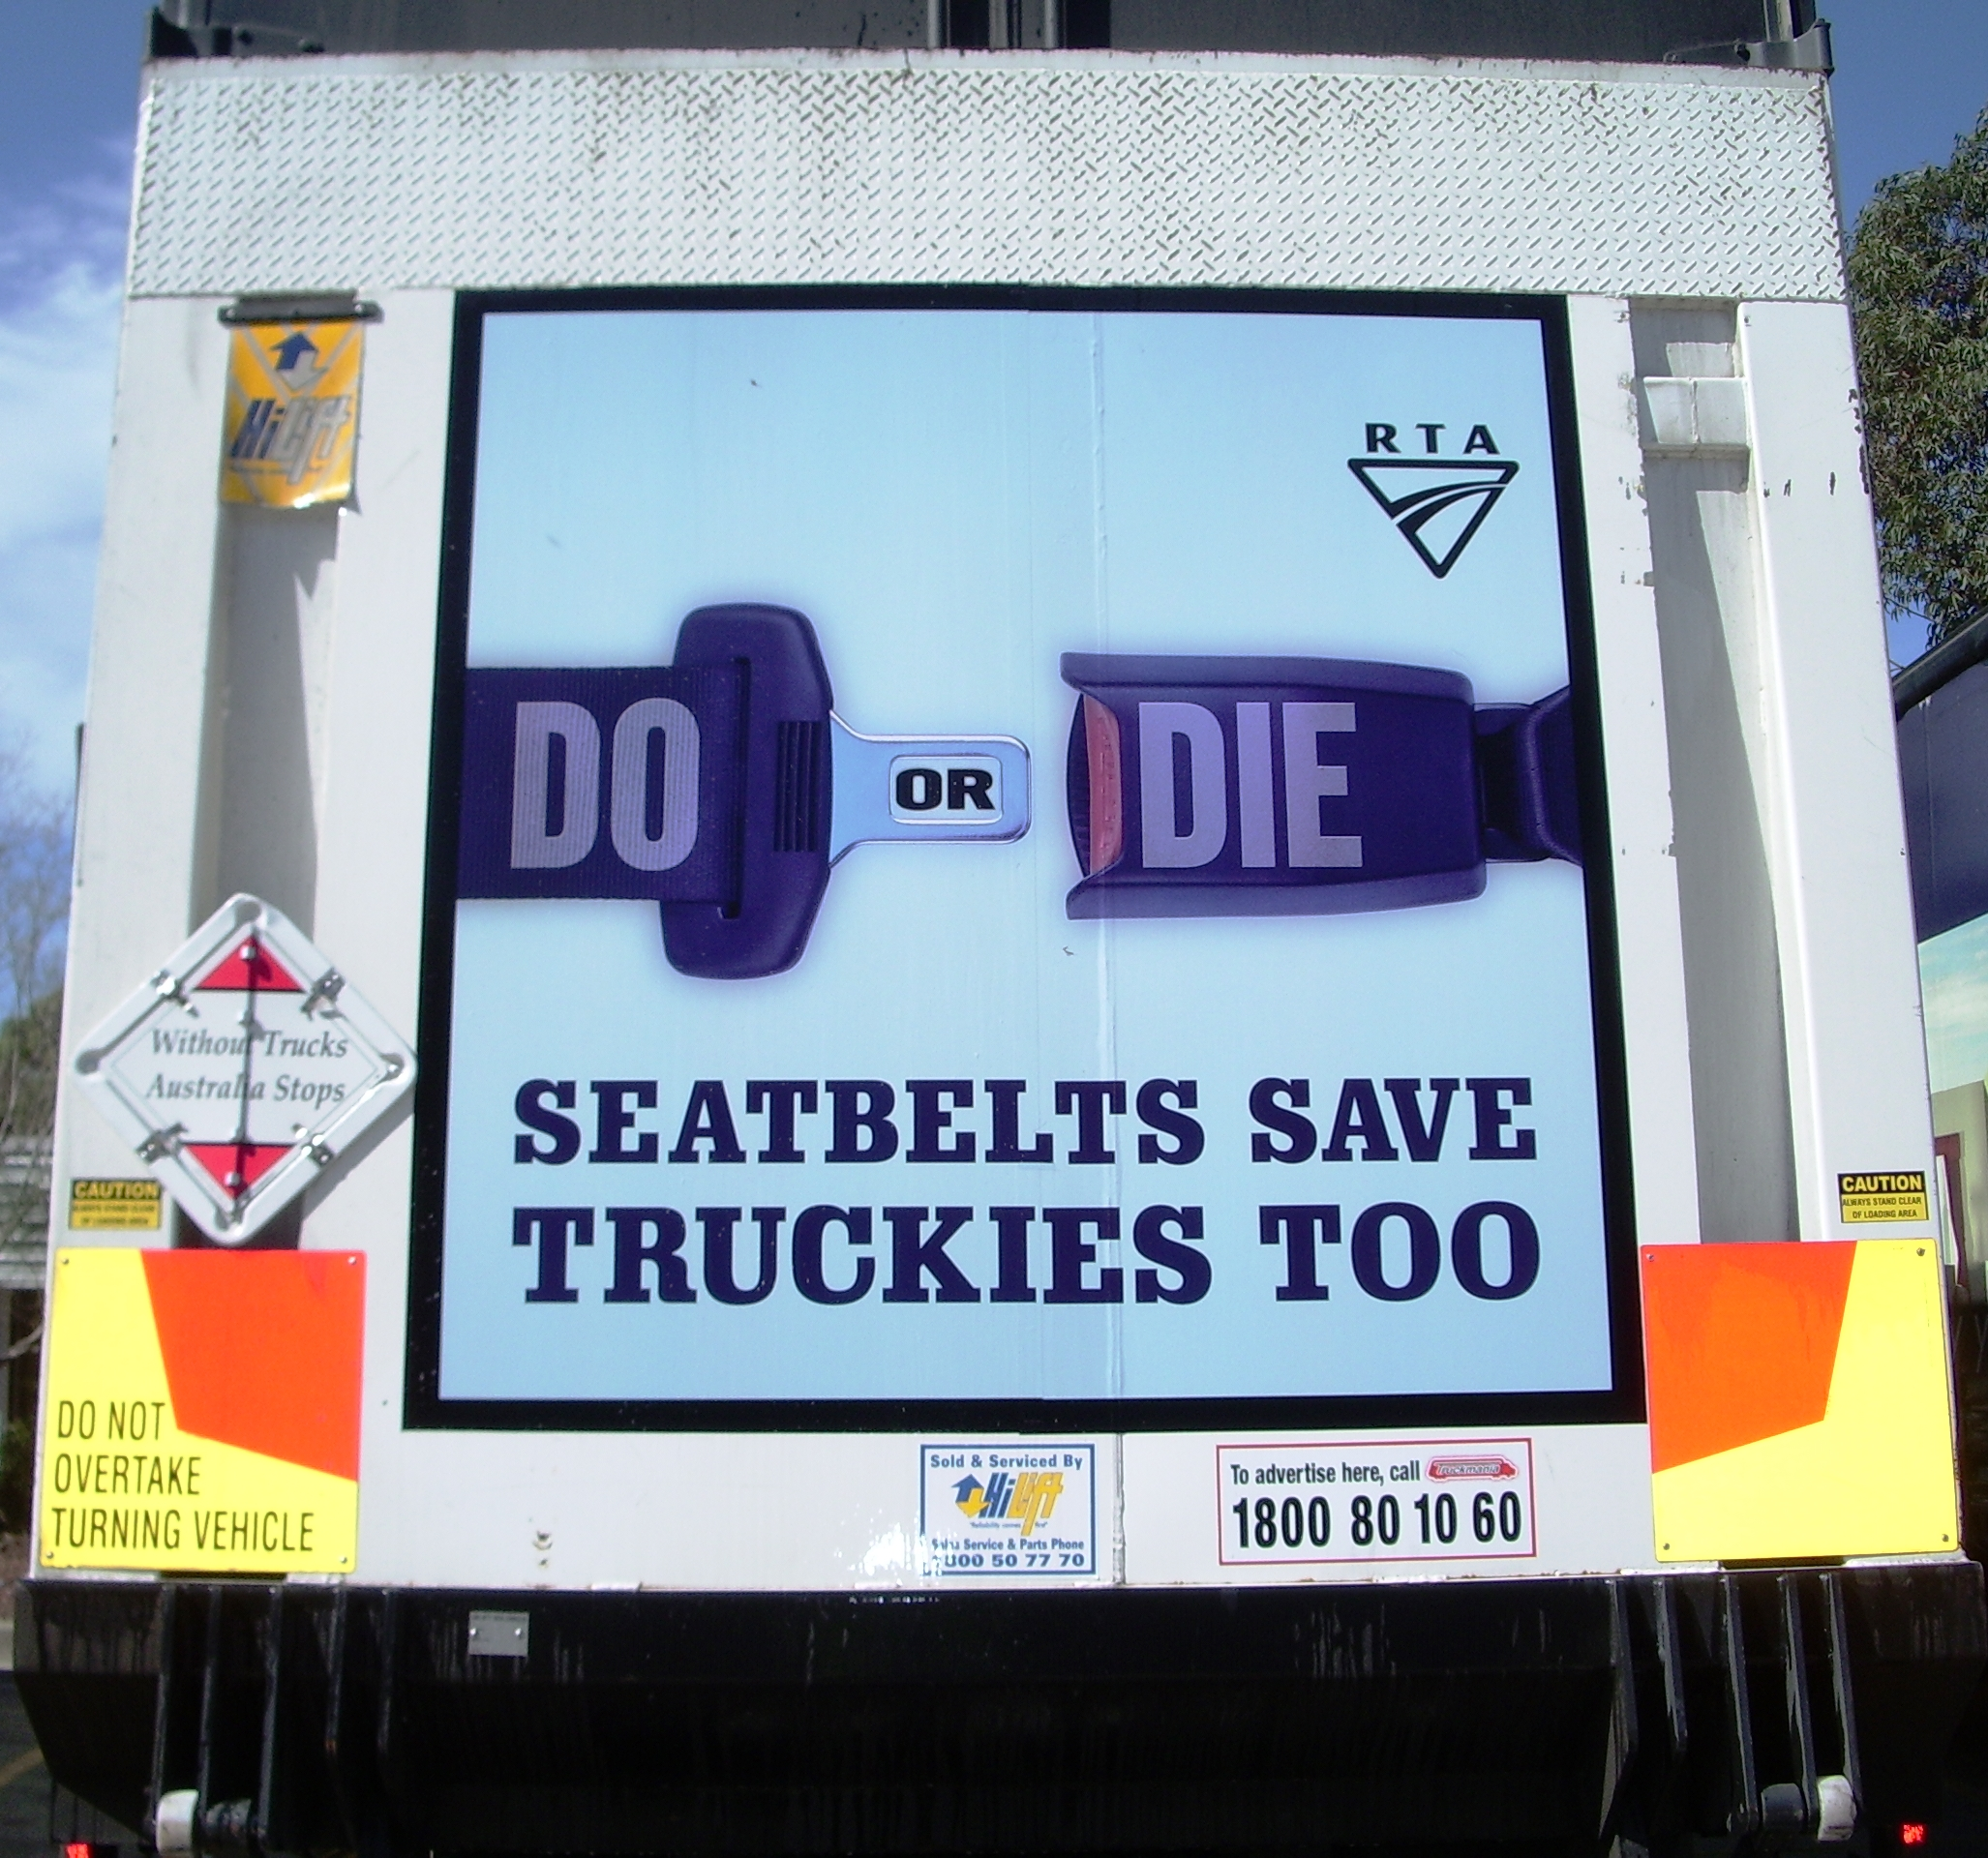 Truck advertising. RTA TruckBack Seatbelts Save Truckies Too RMS TfNSW. Tailgate.